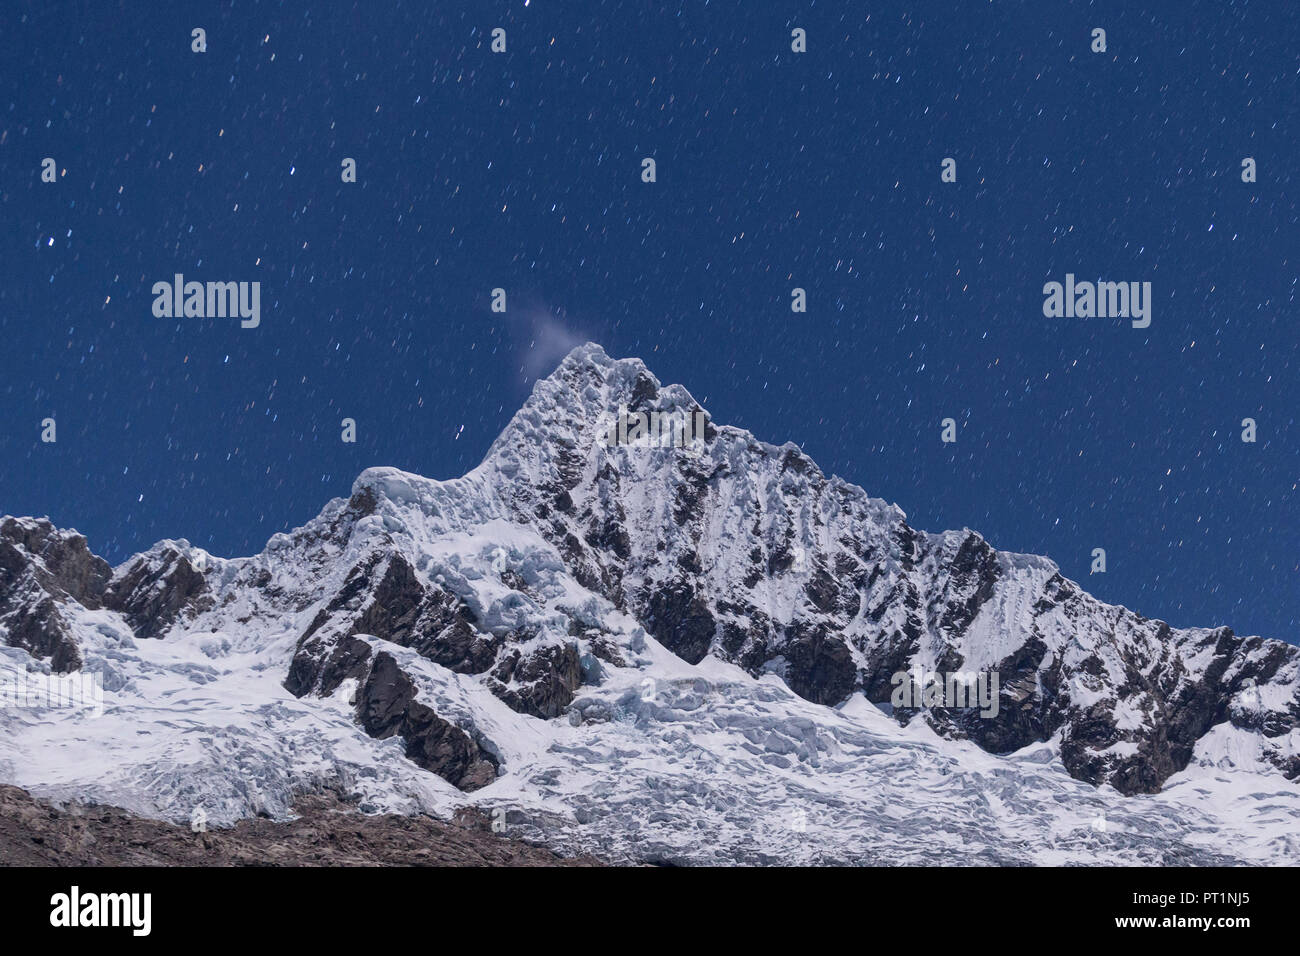 Alpamayo nightscape from Alpamayo base camp, Ancash, Cordigliera Blanca, Peru - Stock Image